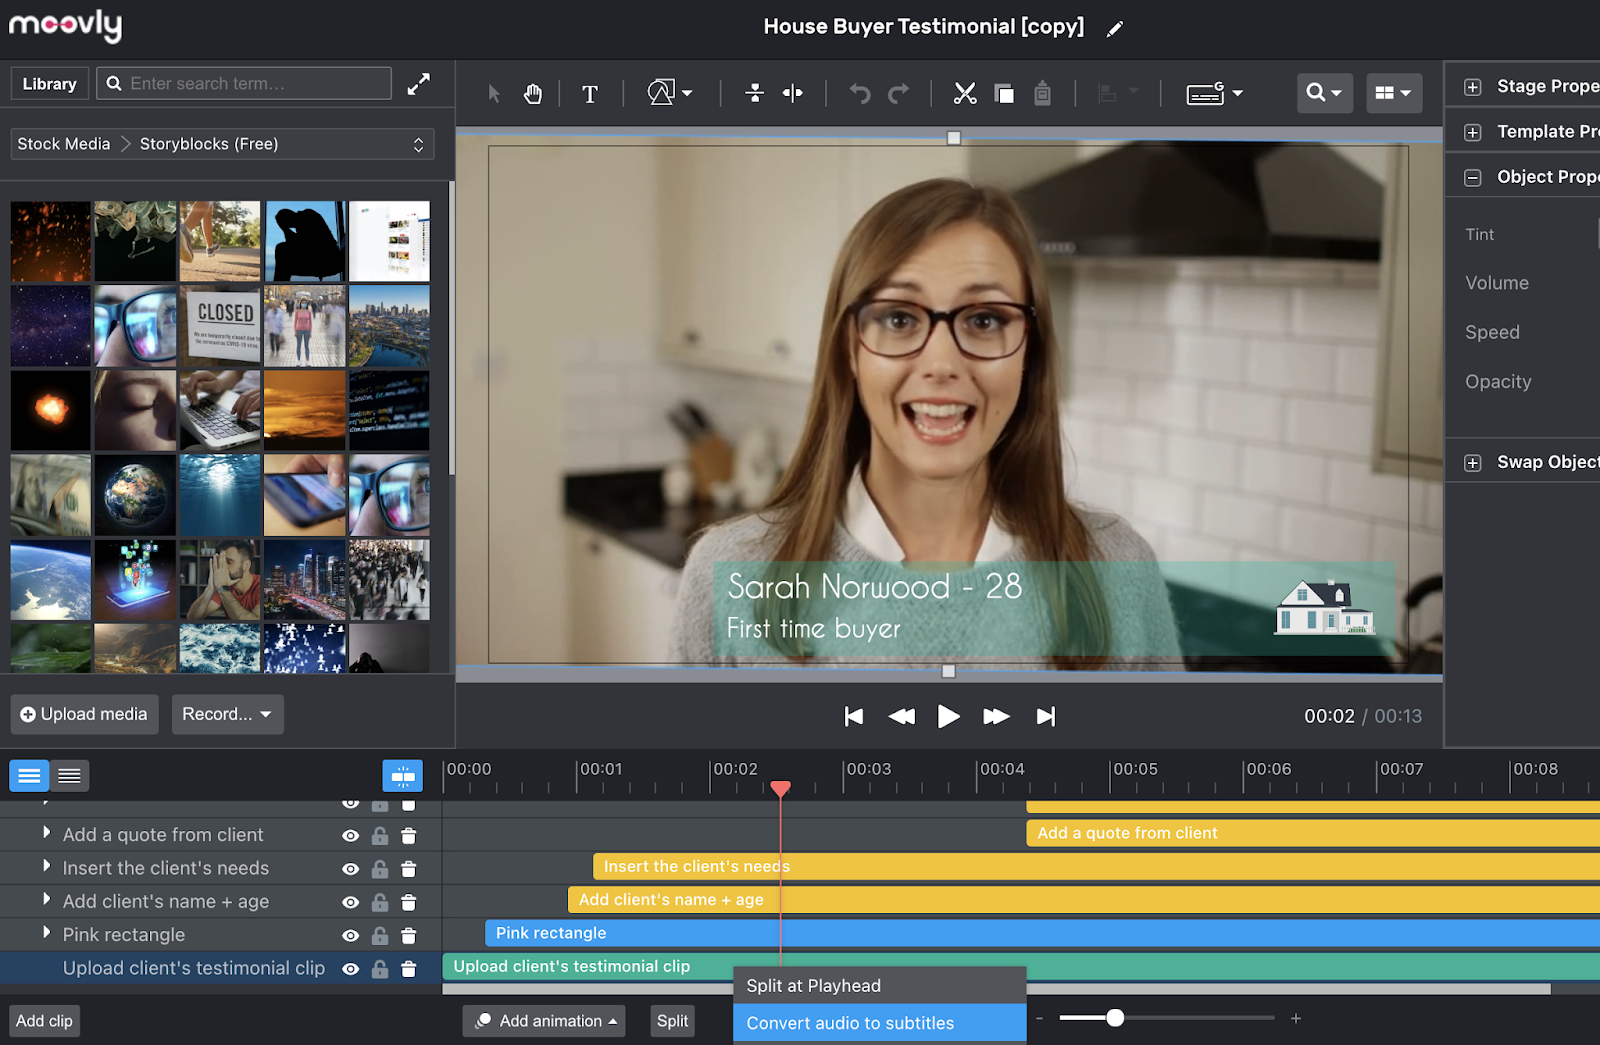 Footage in video editor with option to convert audio to subtitles